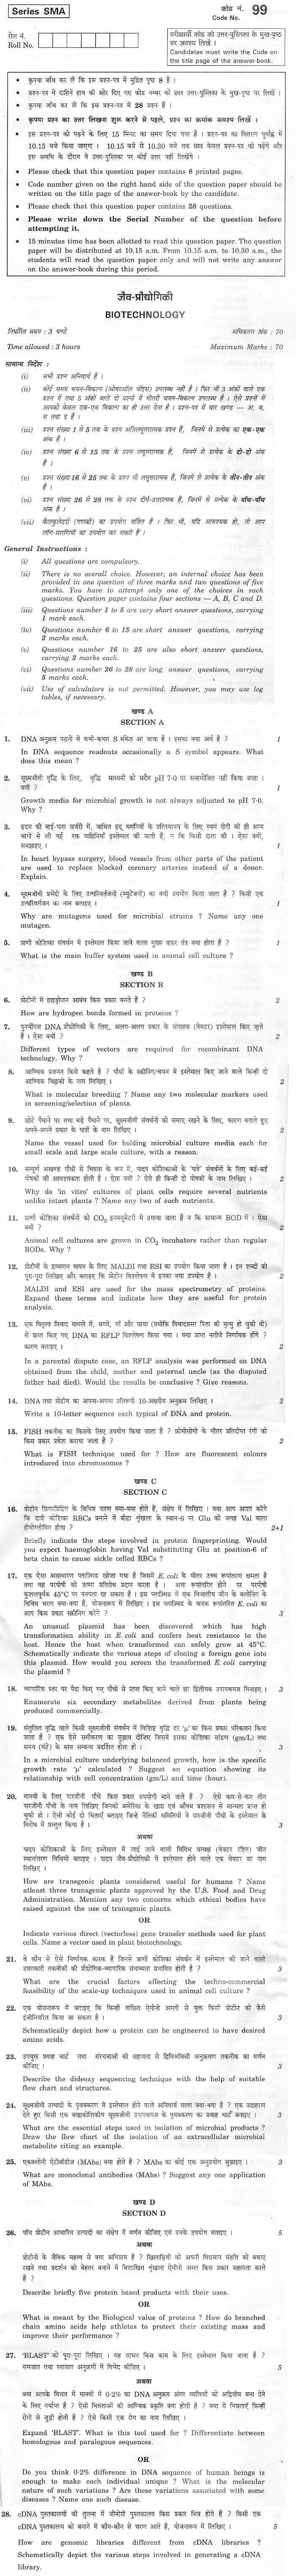 CBSE Class XII Previous Year Question Paper 2012 Biotechnology